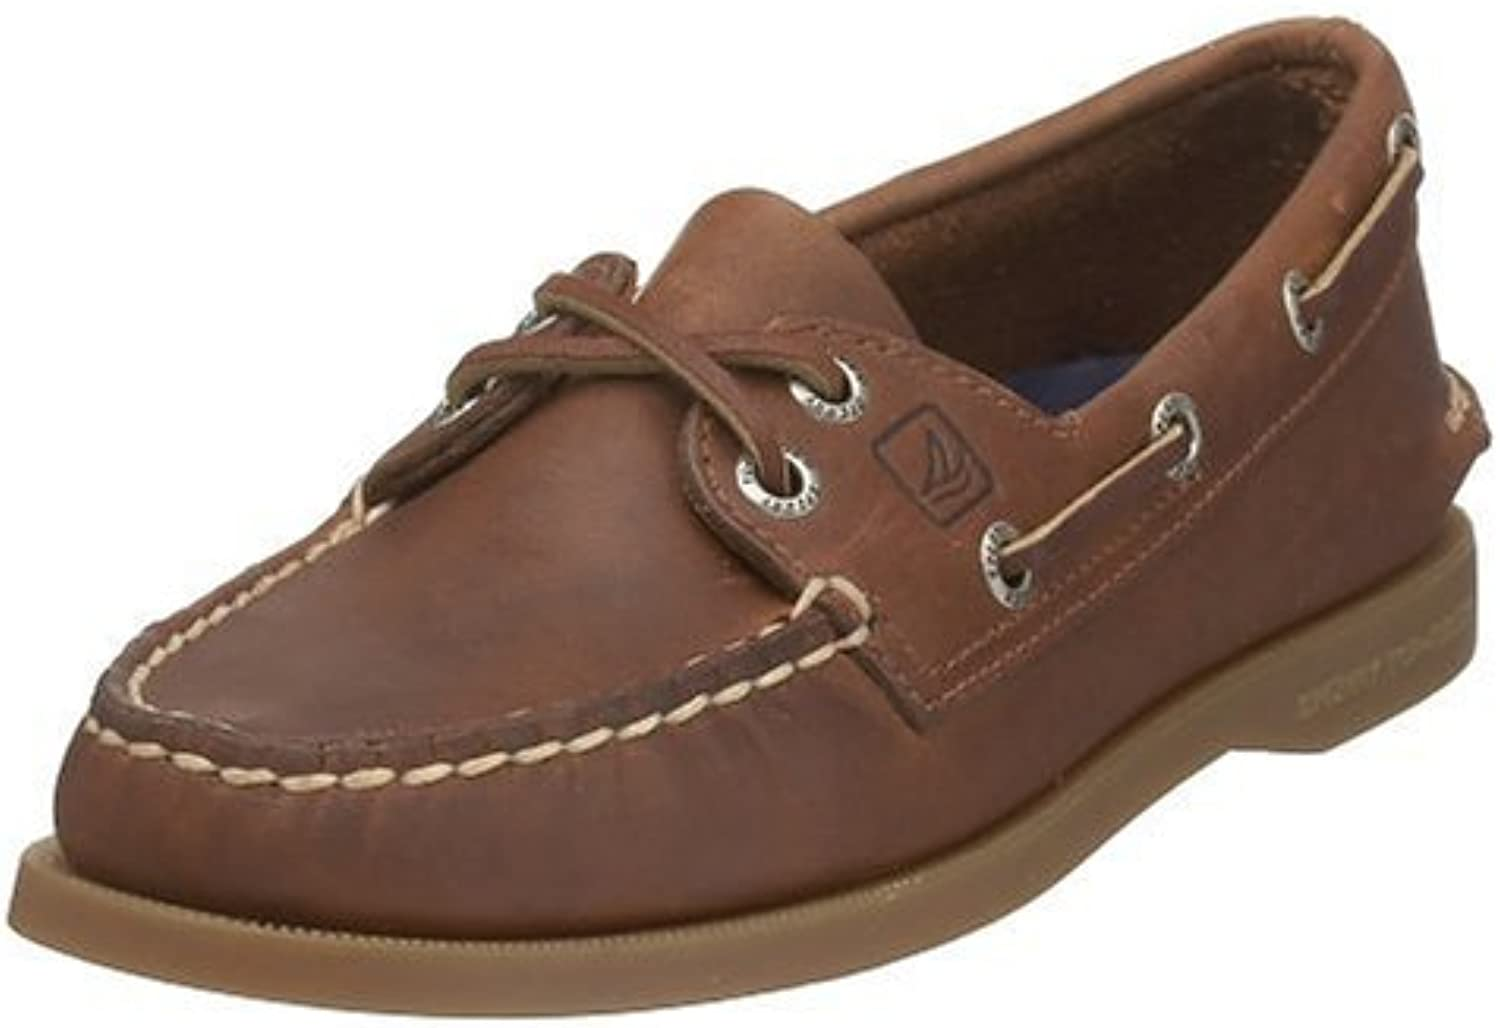 Sperry Women's Authentic Original 2-Eye Boat shoes in Sahara